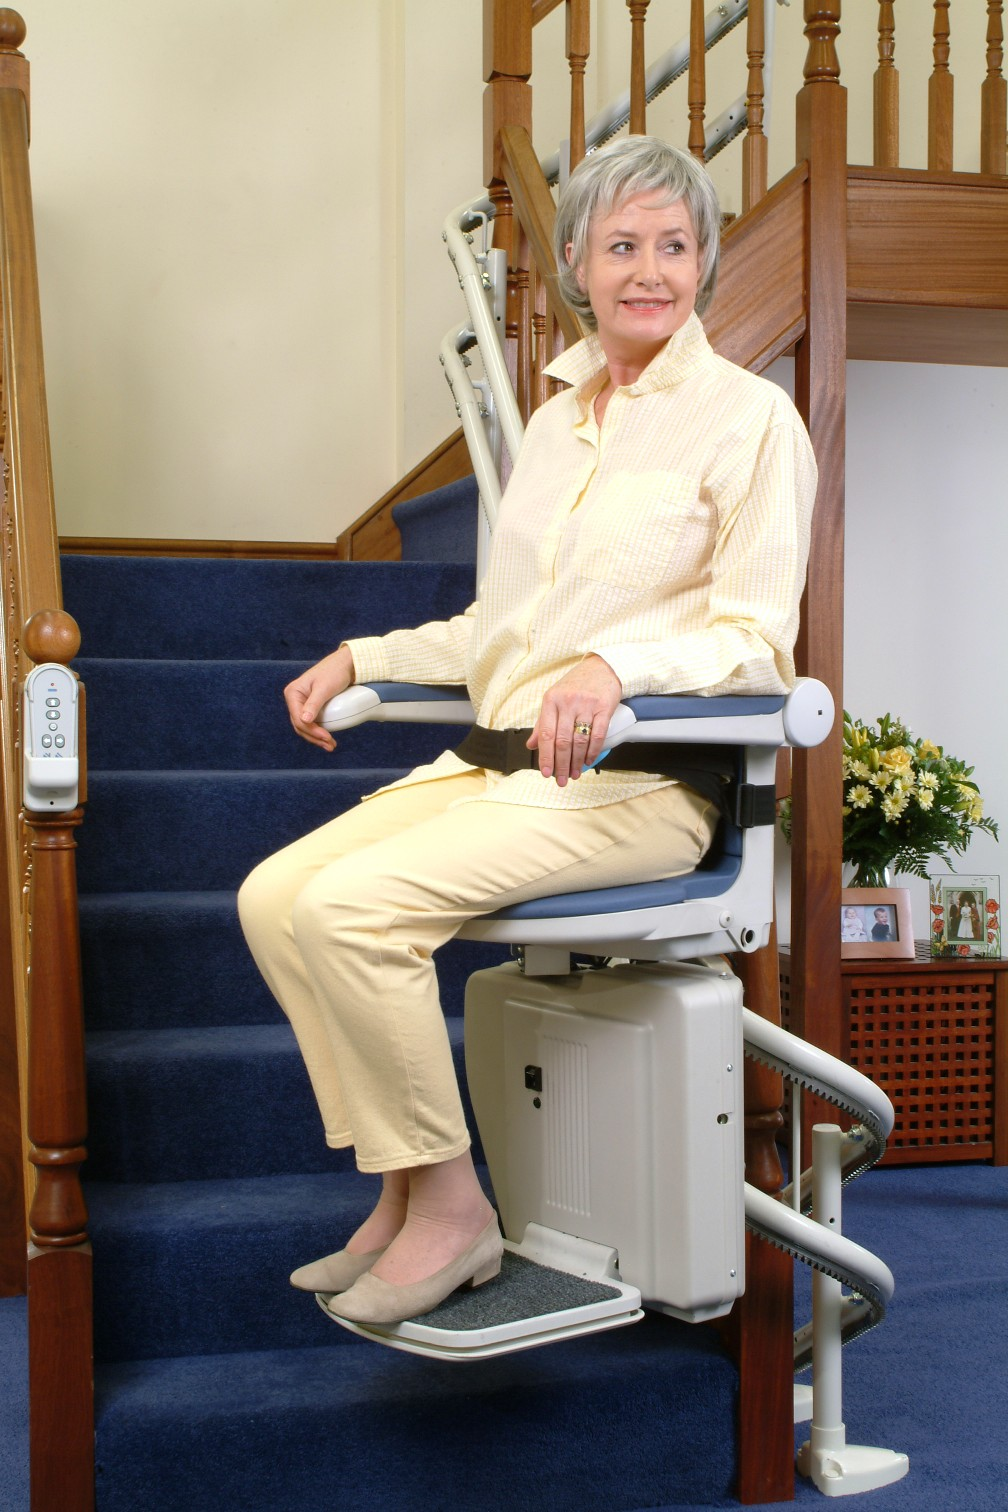 medical supply stair lift new jersey, stair chair lift uk, used stair lift ohio, used stair lifts